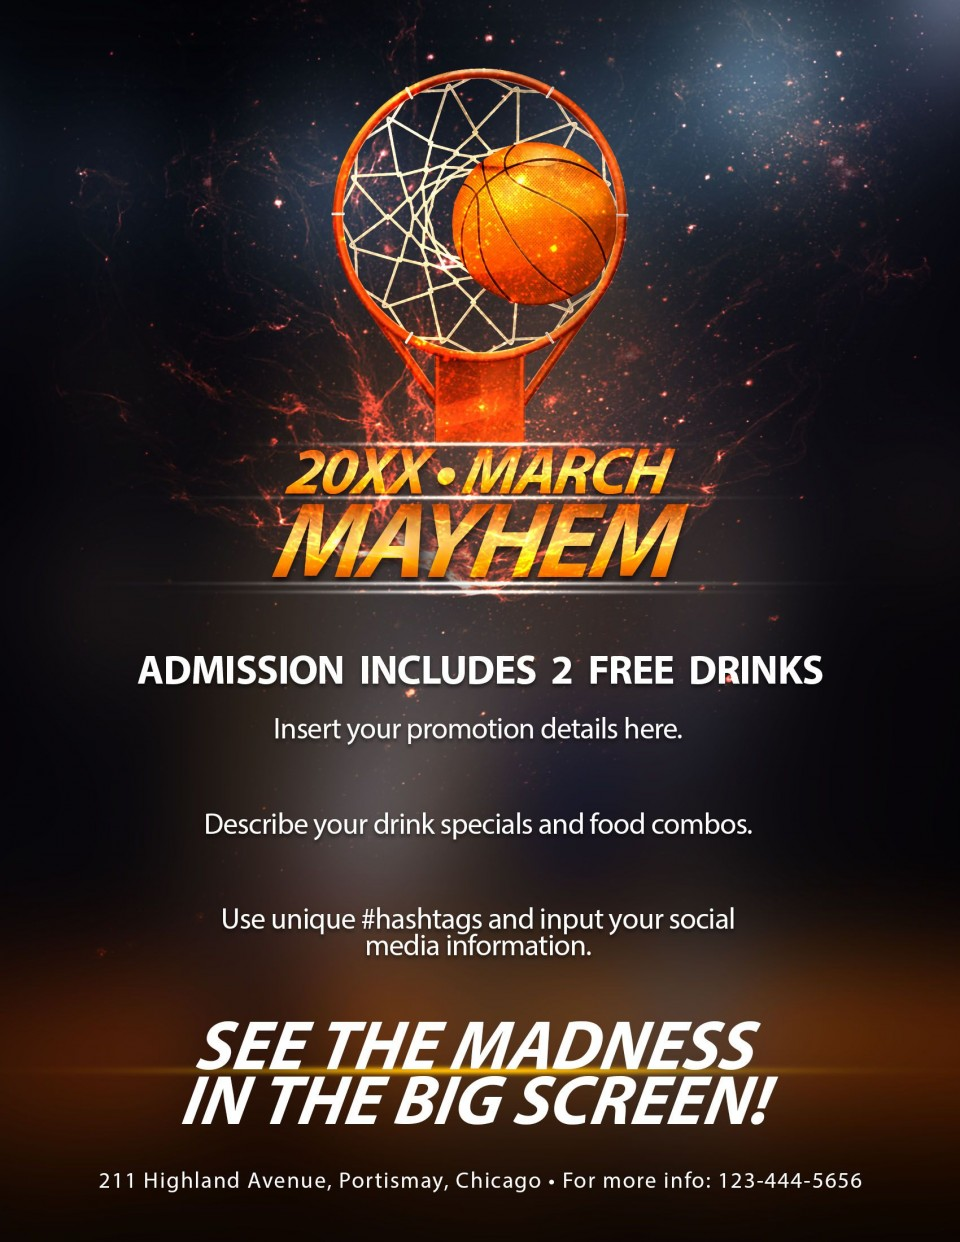 006 Surprising Basketball Flyer Template Free Highest Clarity  Brochure Tryout Camp960